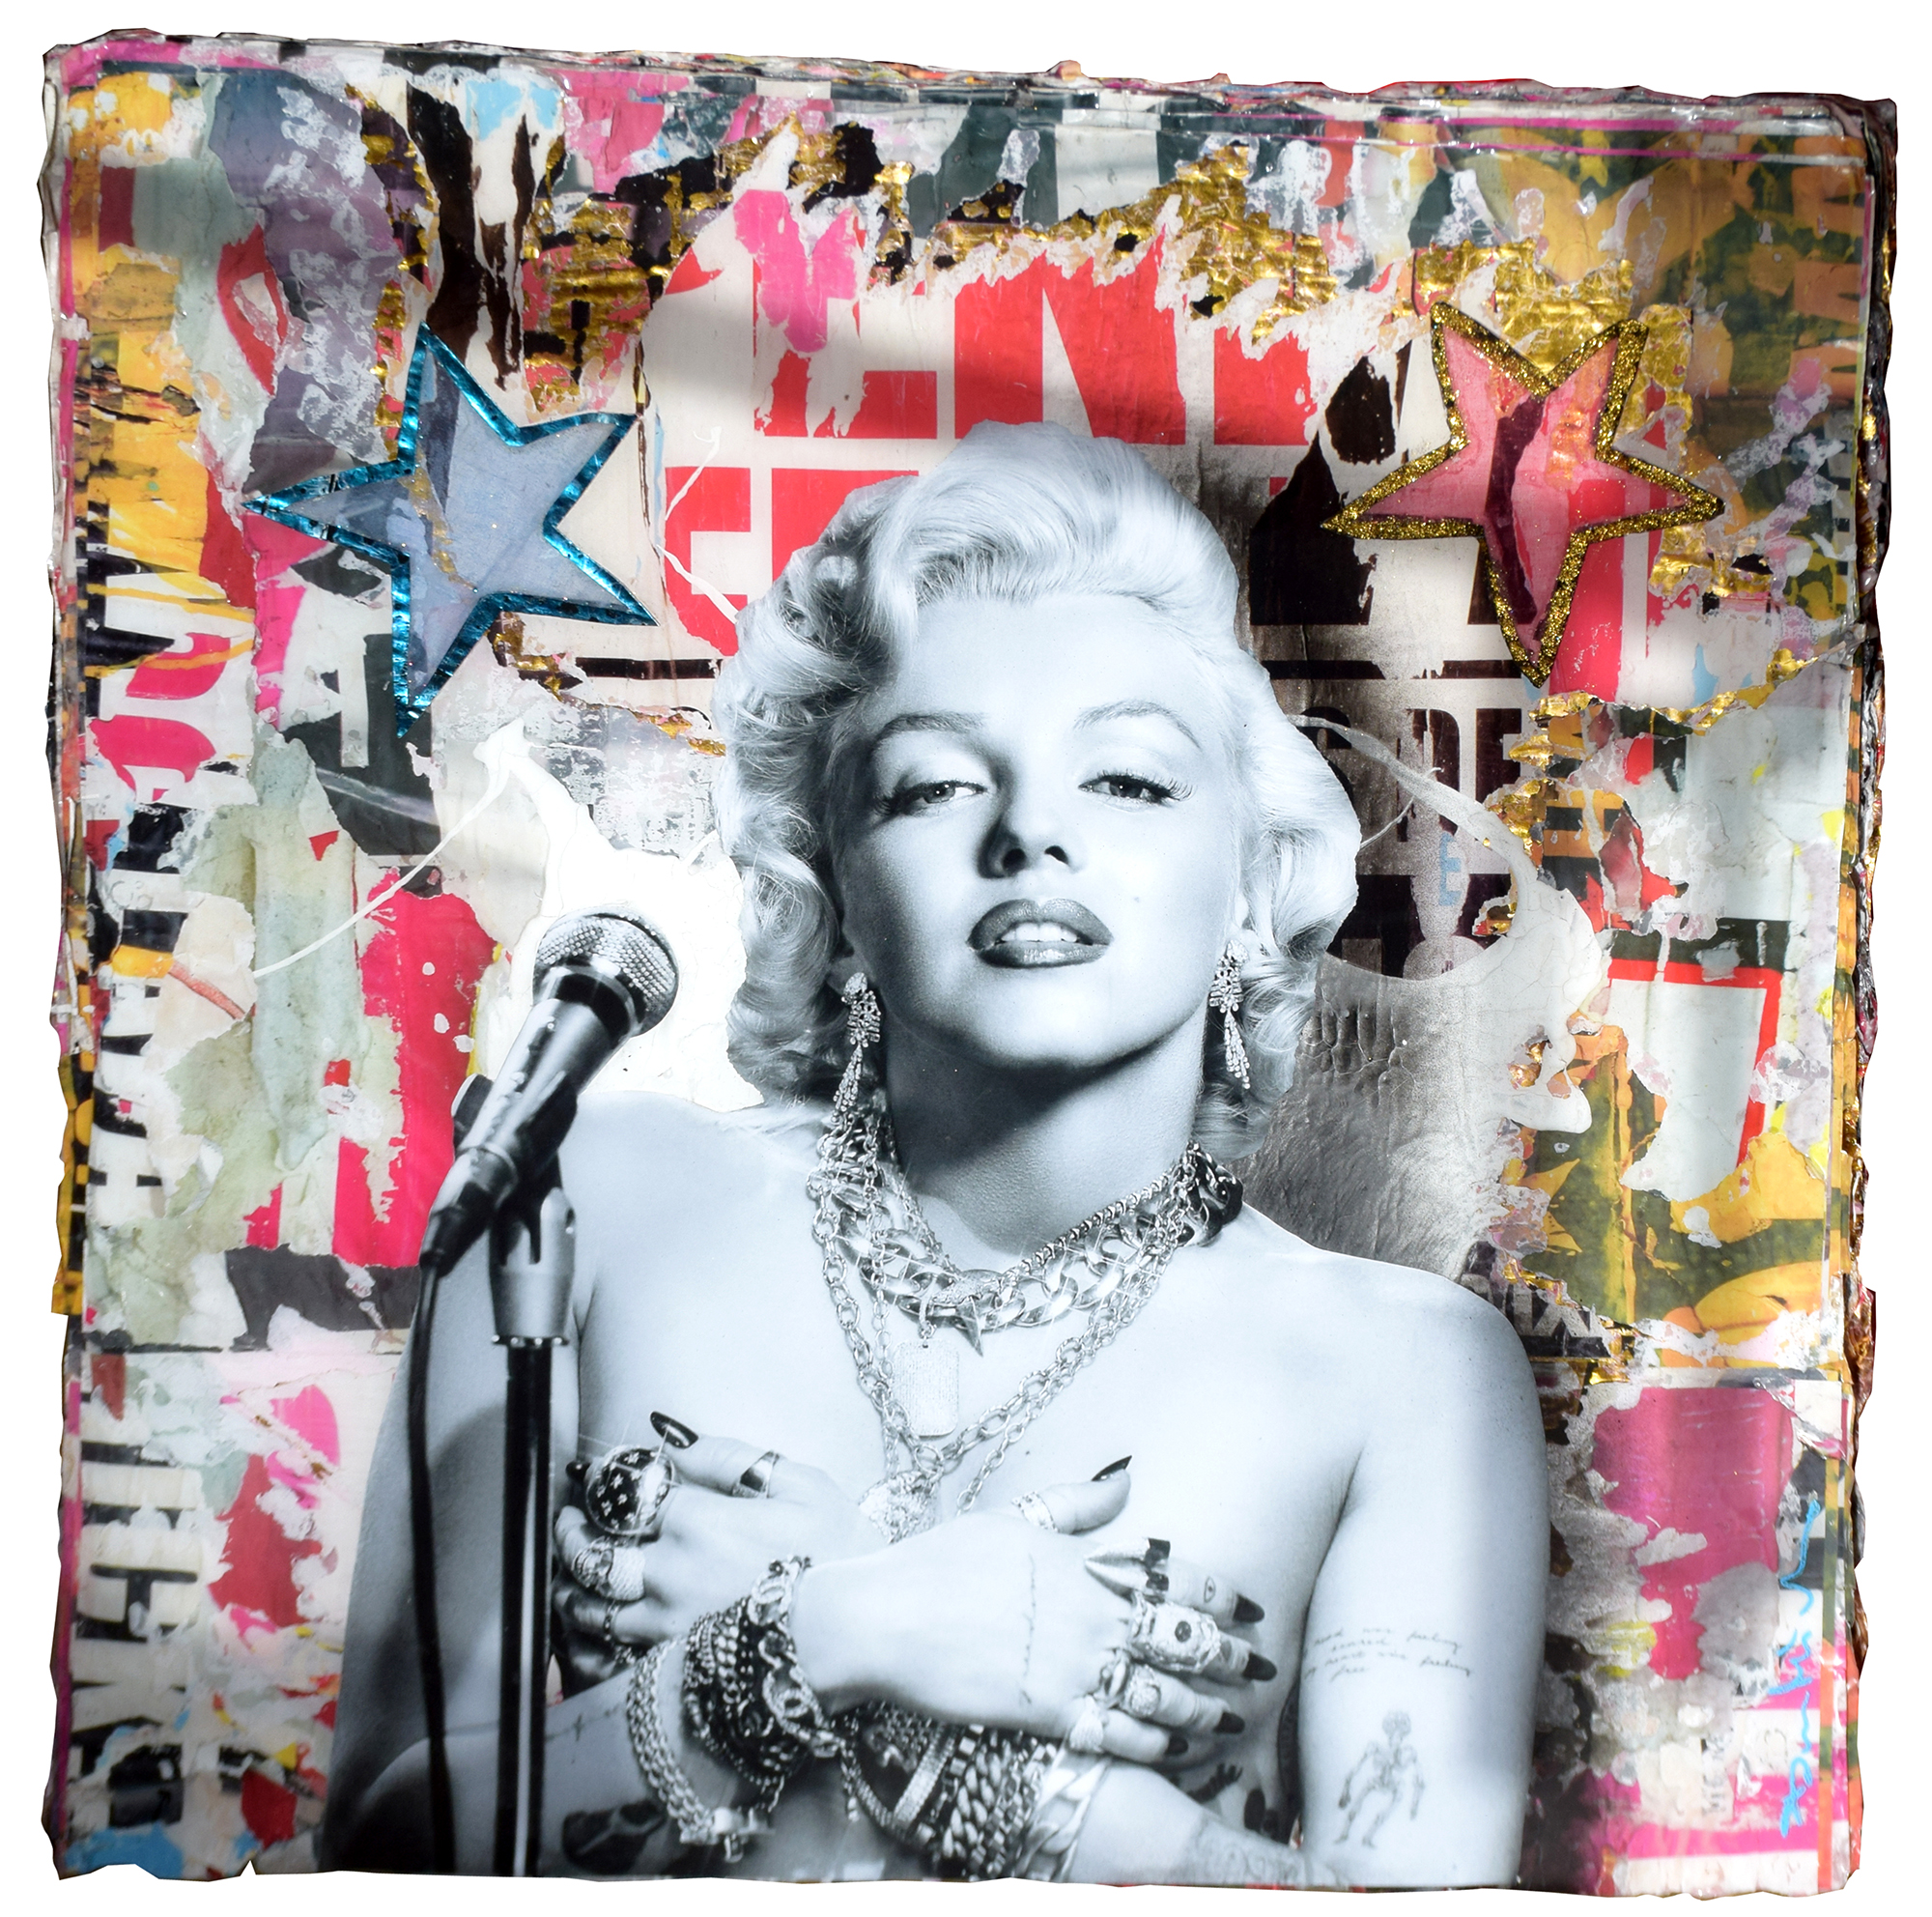 Bram Reijnders - What if Marilyn , 8031-012-028